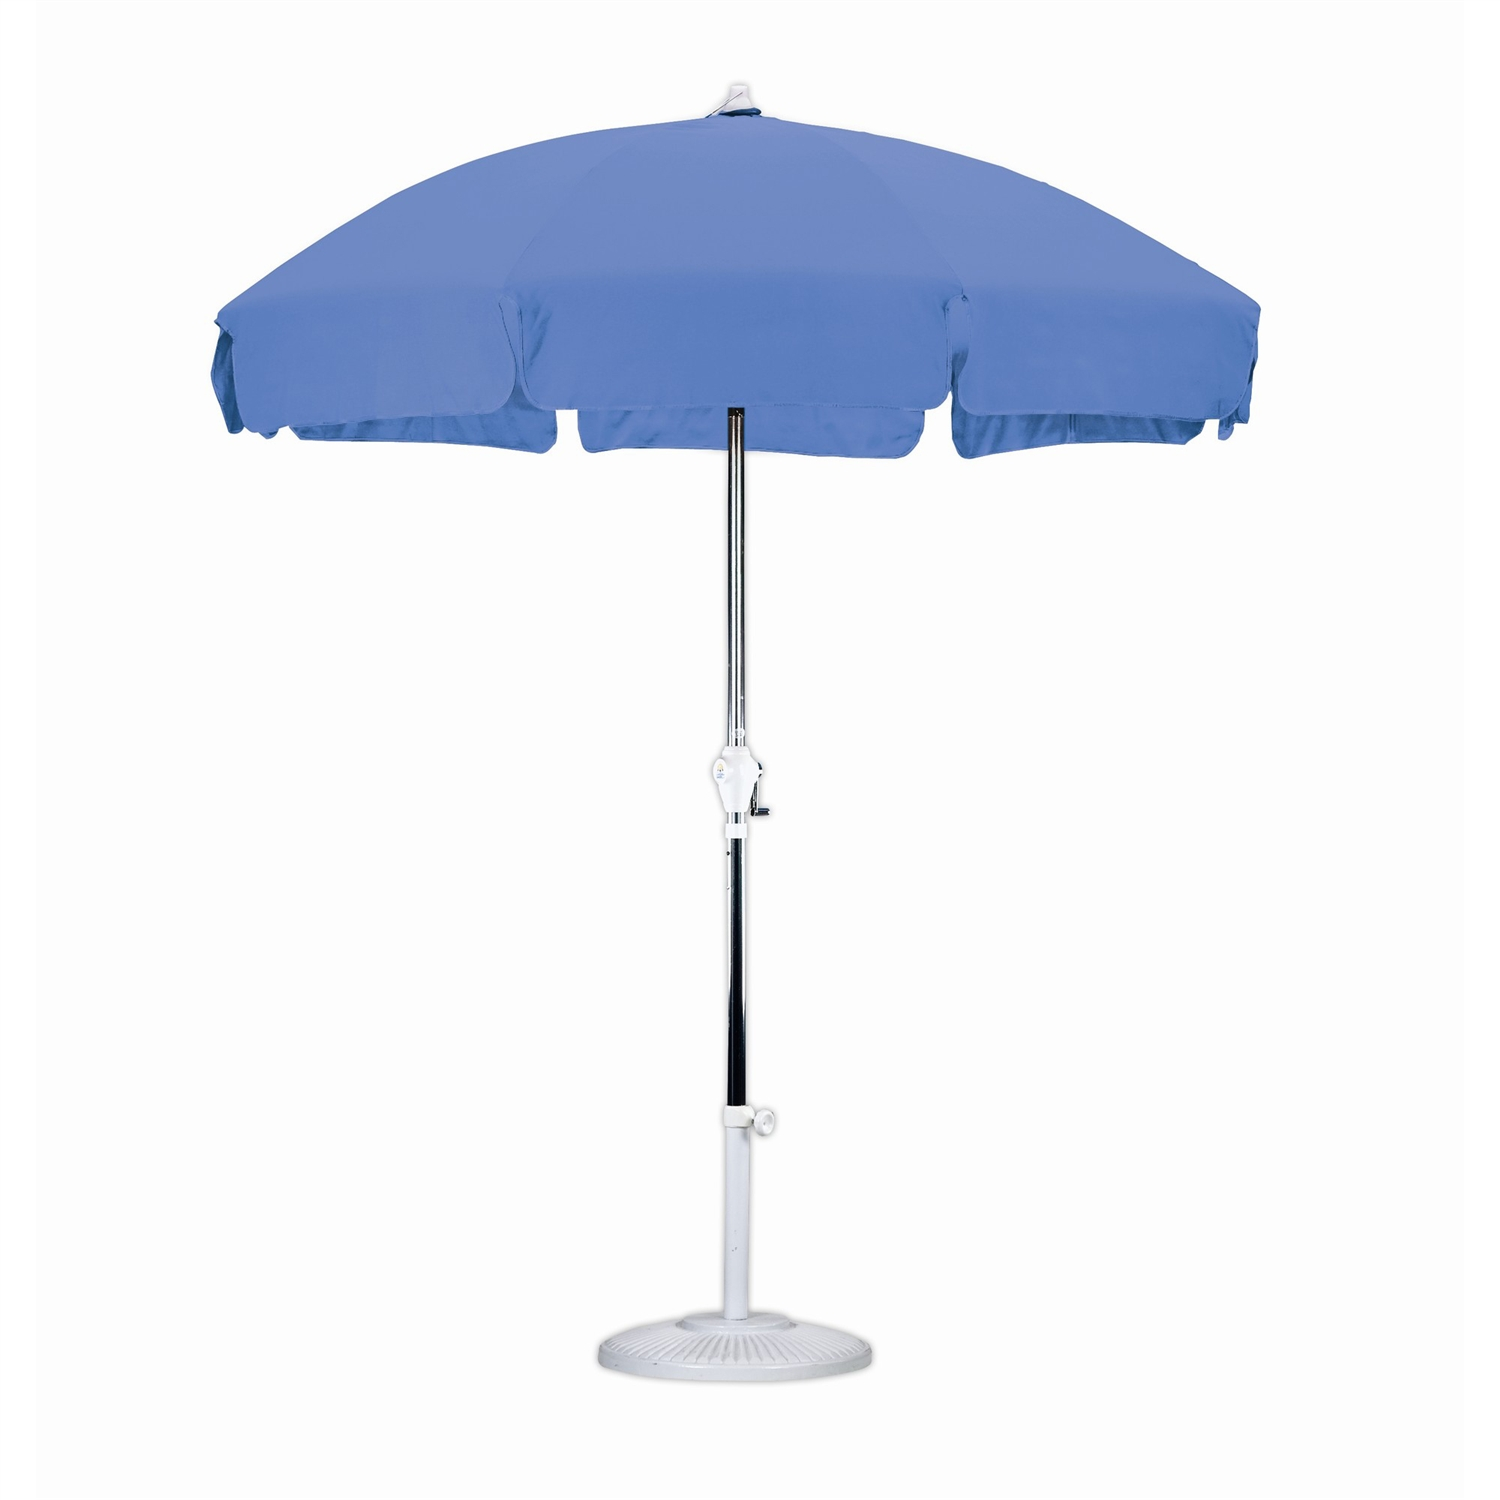 Amazing 7.5 Foot Patio Umbrella With Push Button Tilt In Royal Blue Olefin